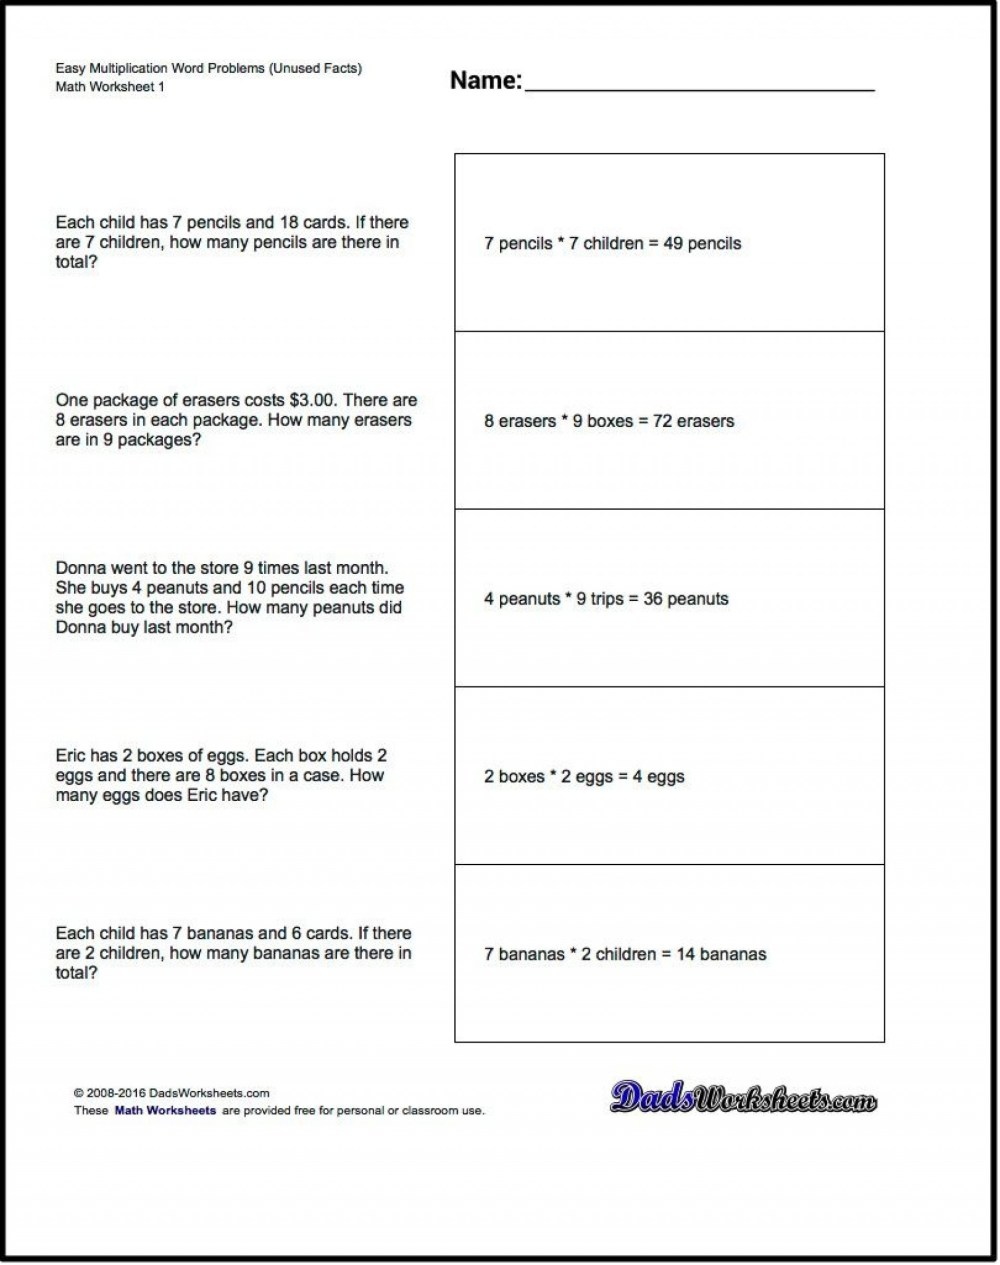 medium resolution of 5 Free Math Worksheets Second Grade 2 Subtraction Subtract whole Tens From  3 Digit Numbers - apocalomegaproductions.com